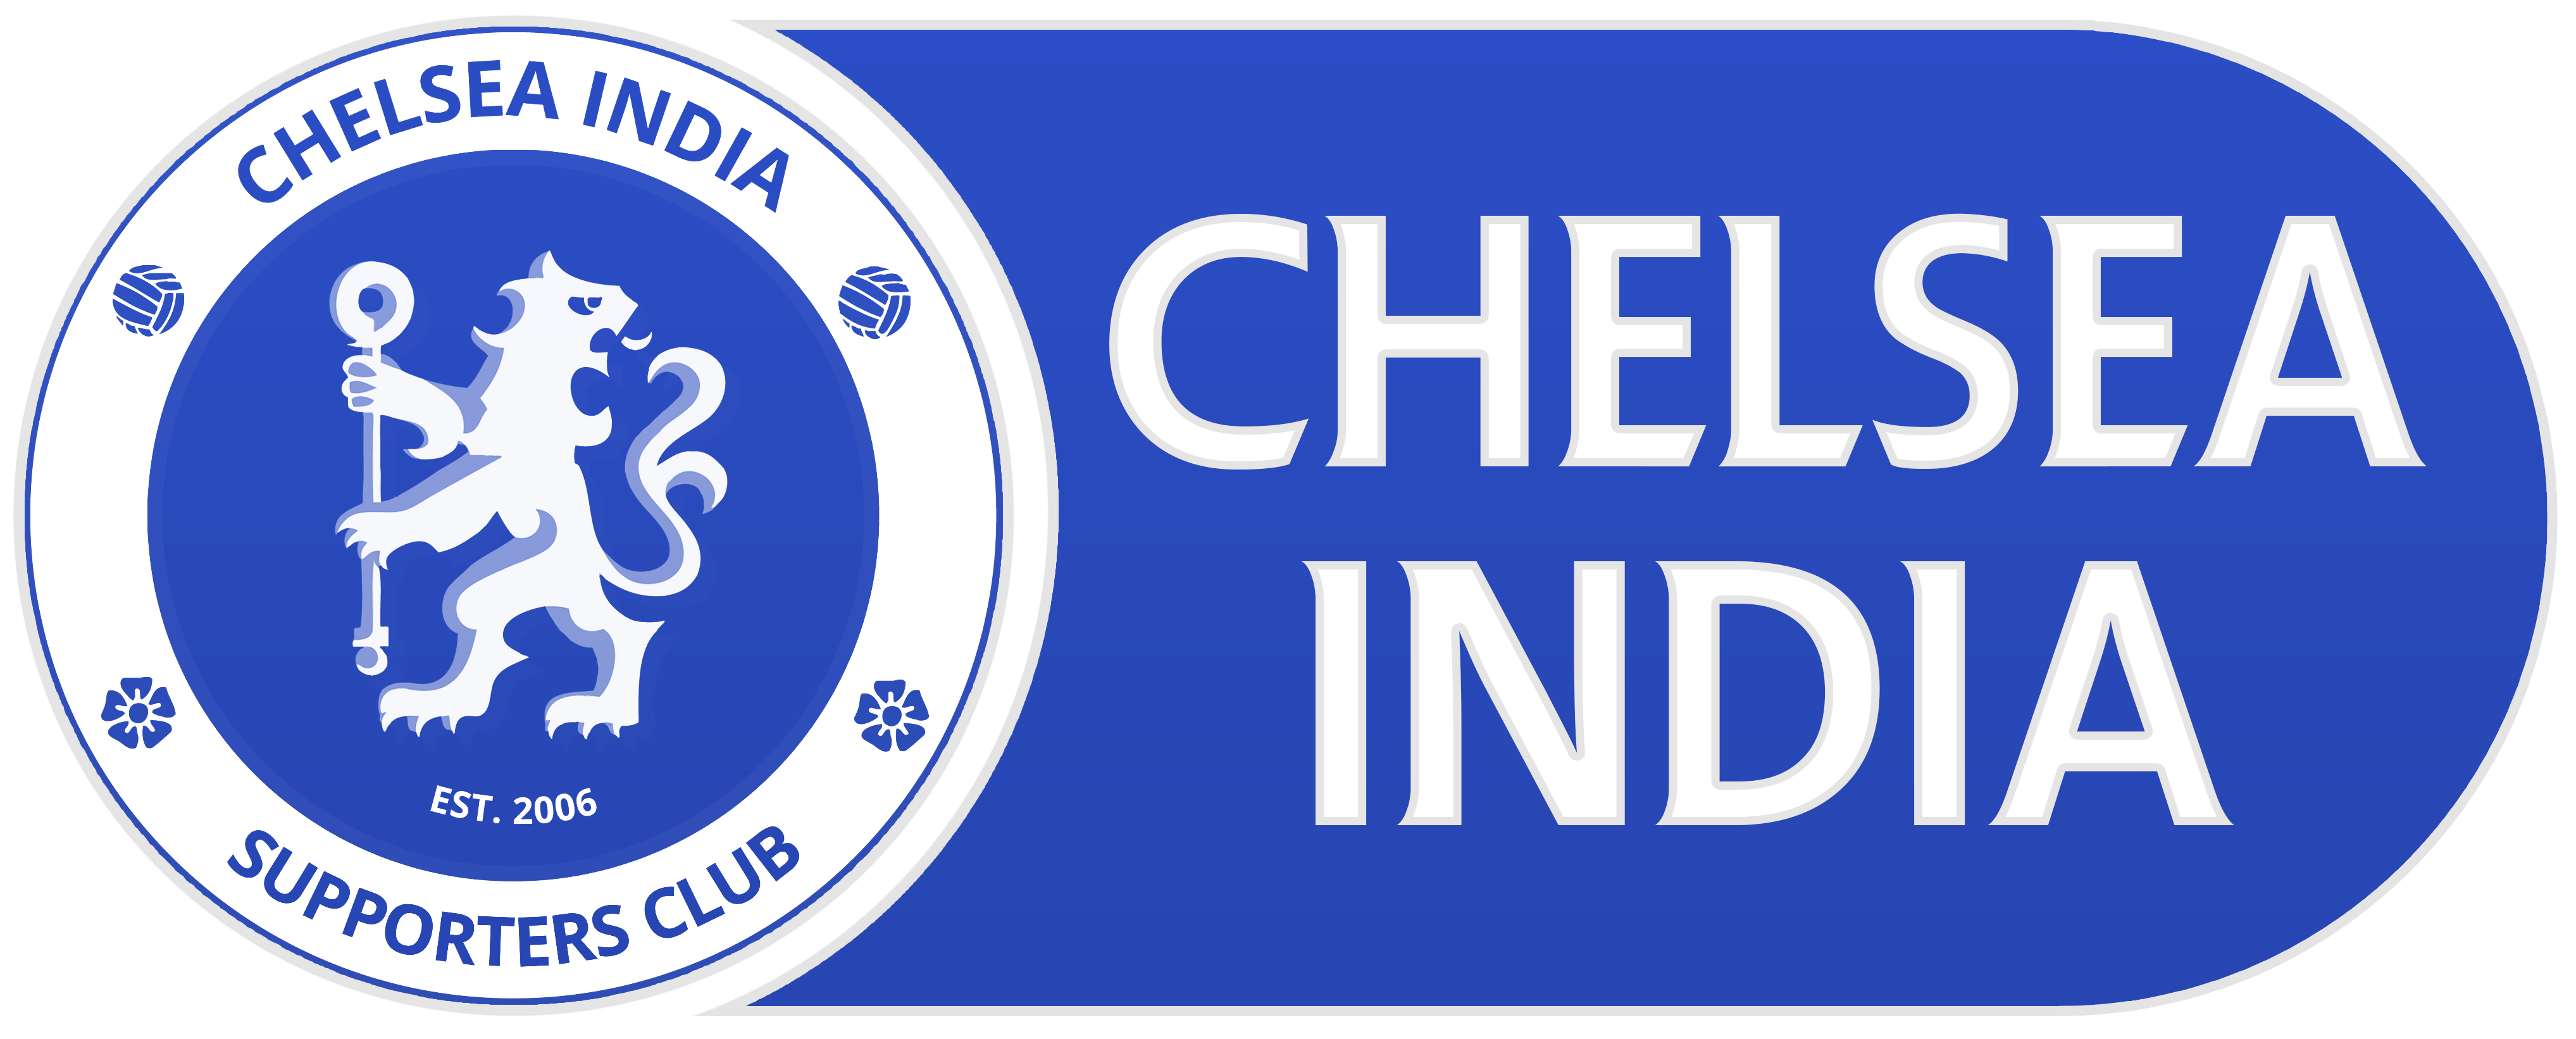 Chelsea 256x256 Logo Png Images.